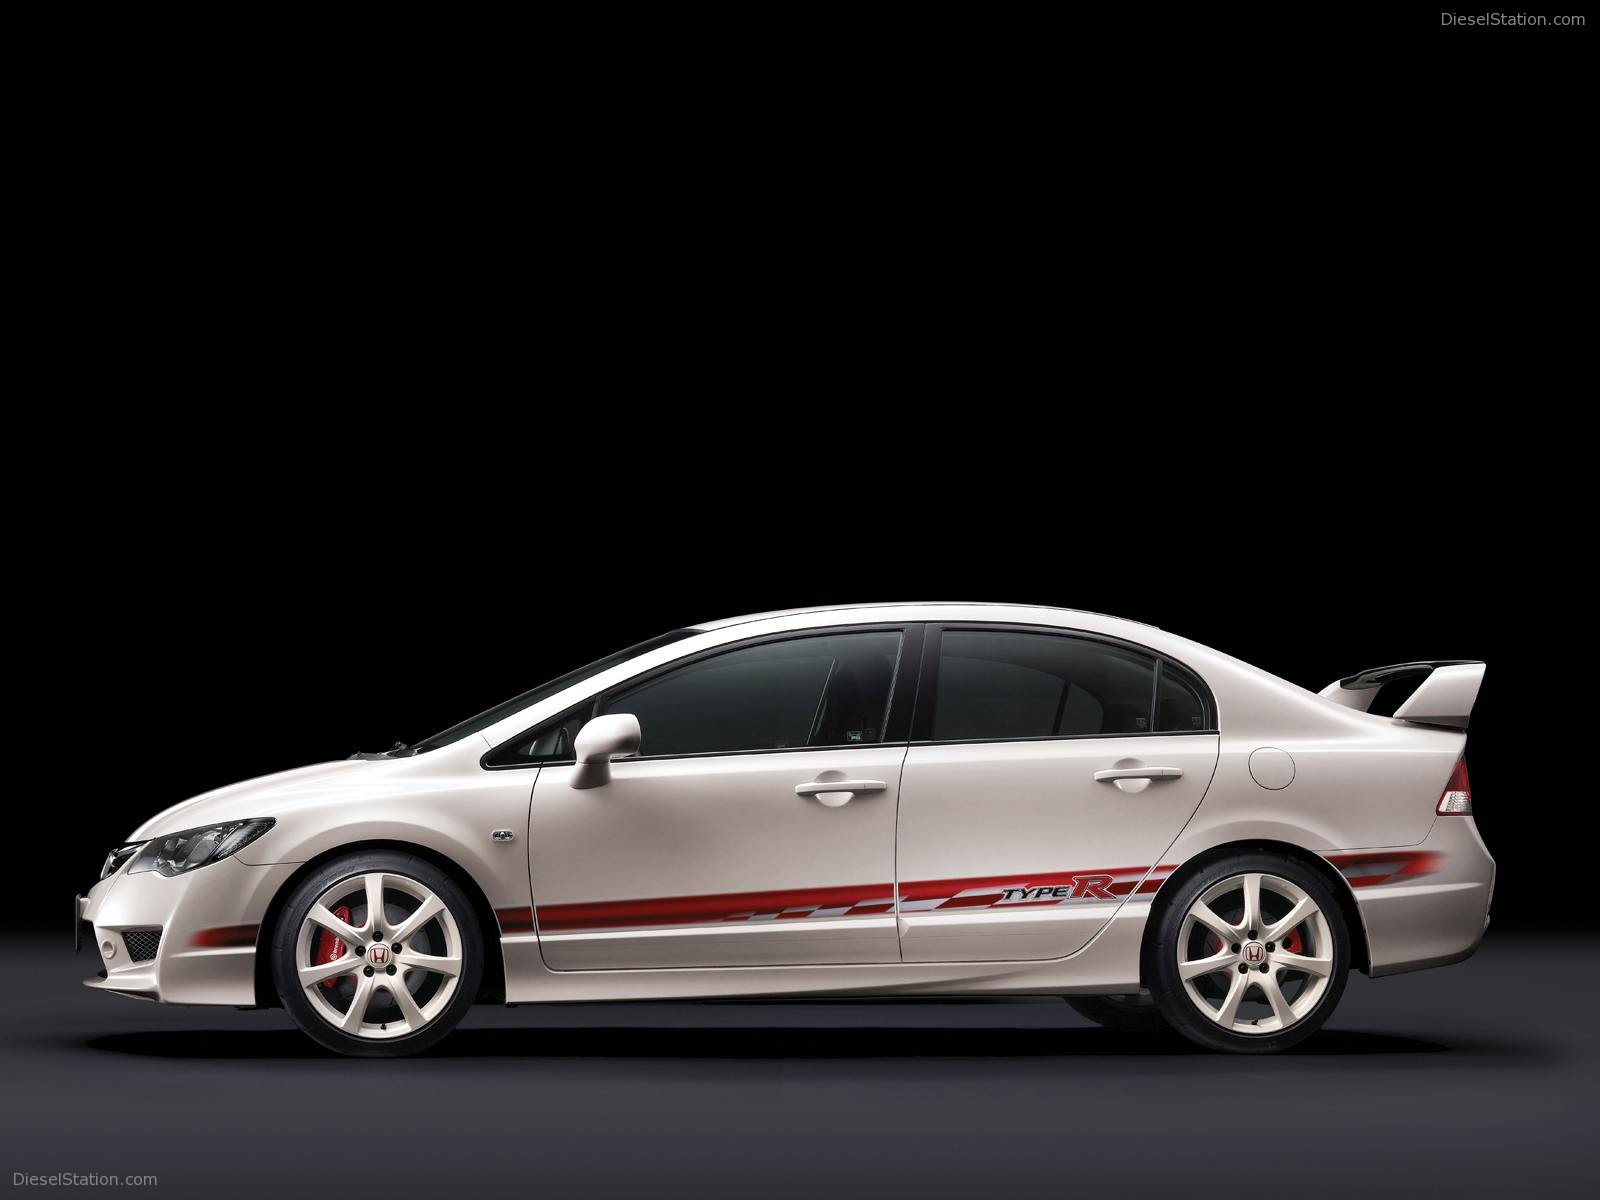 Honda Civic Type R Wallpapers Exotic Car Pictures 24 of 1600x1200